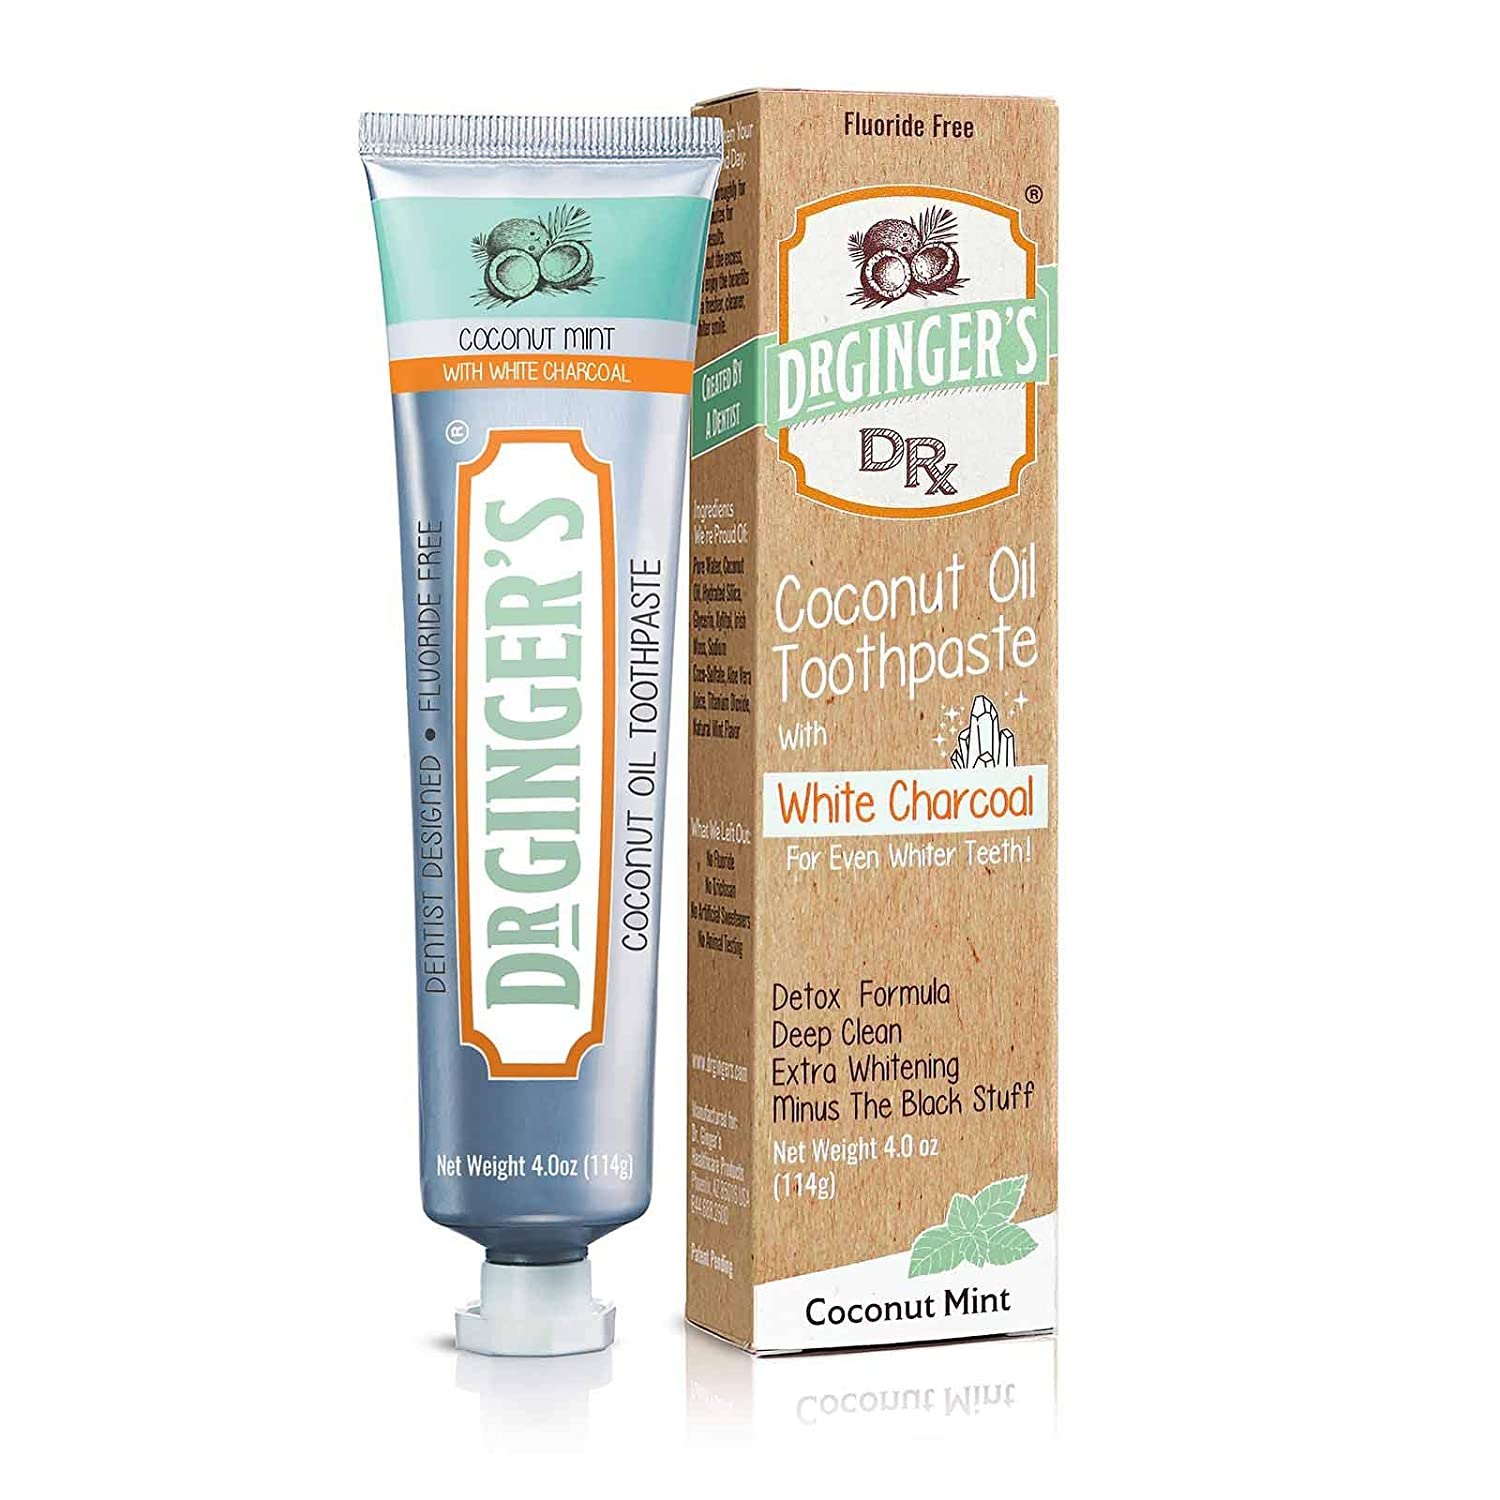 Clearance SALE Limited time Dr. Popular Ginger's Charcoal Toothpaste Pack 1